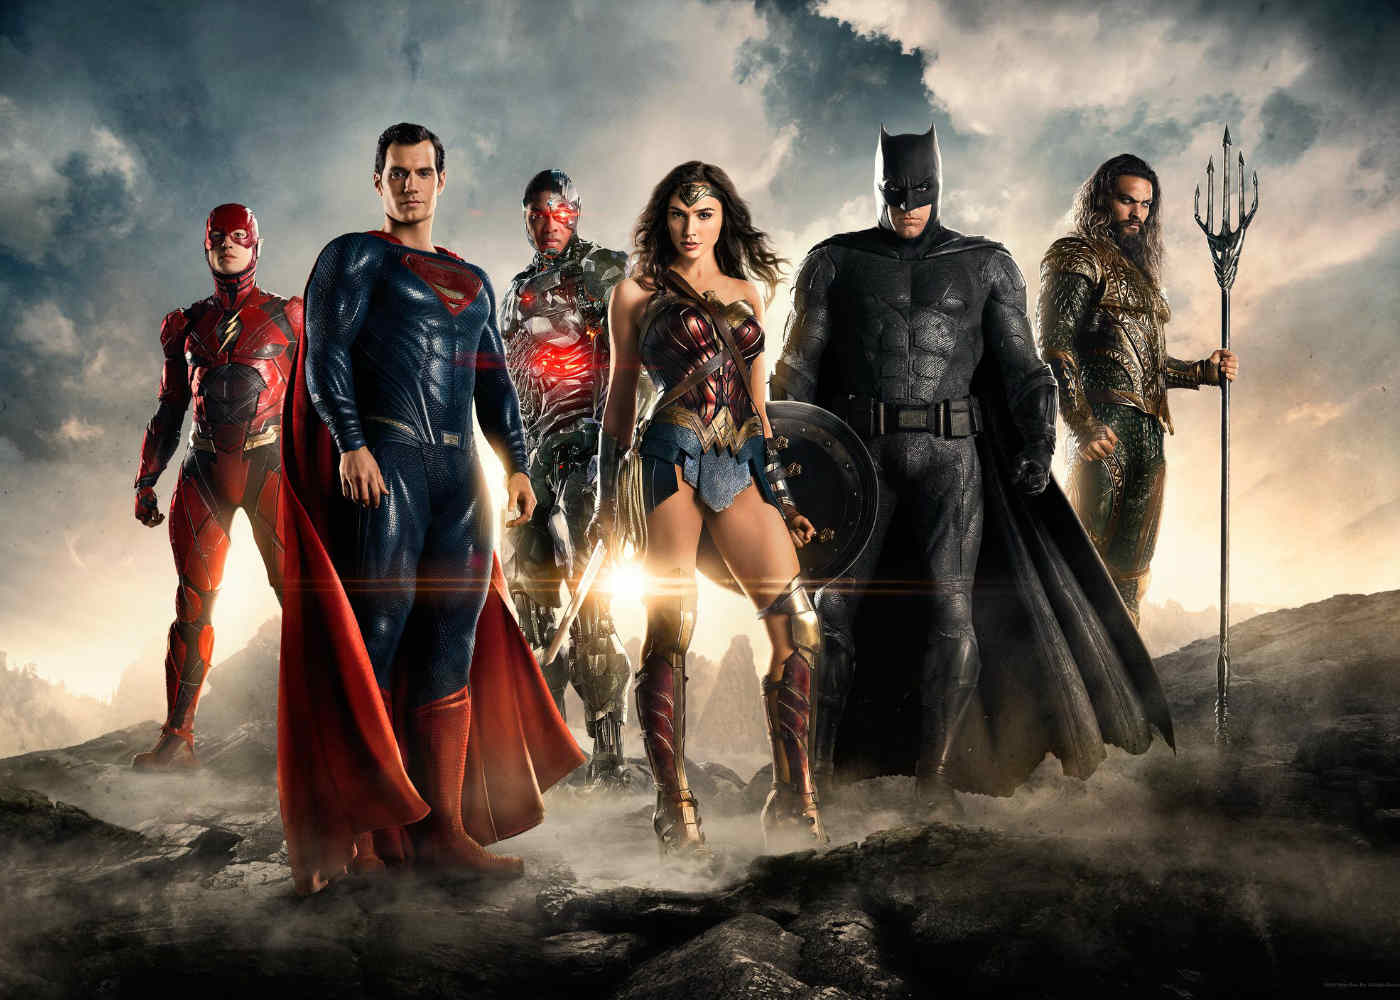 Zack Snyder's Justice League Could Either be a Series or a 4-Hour Movie